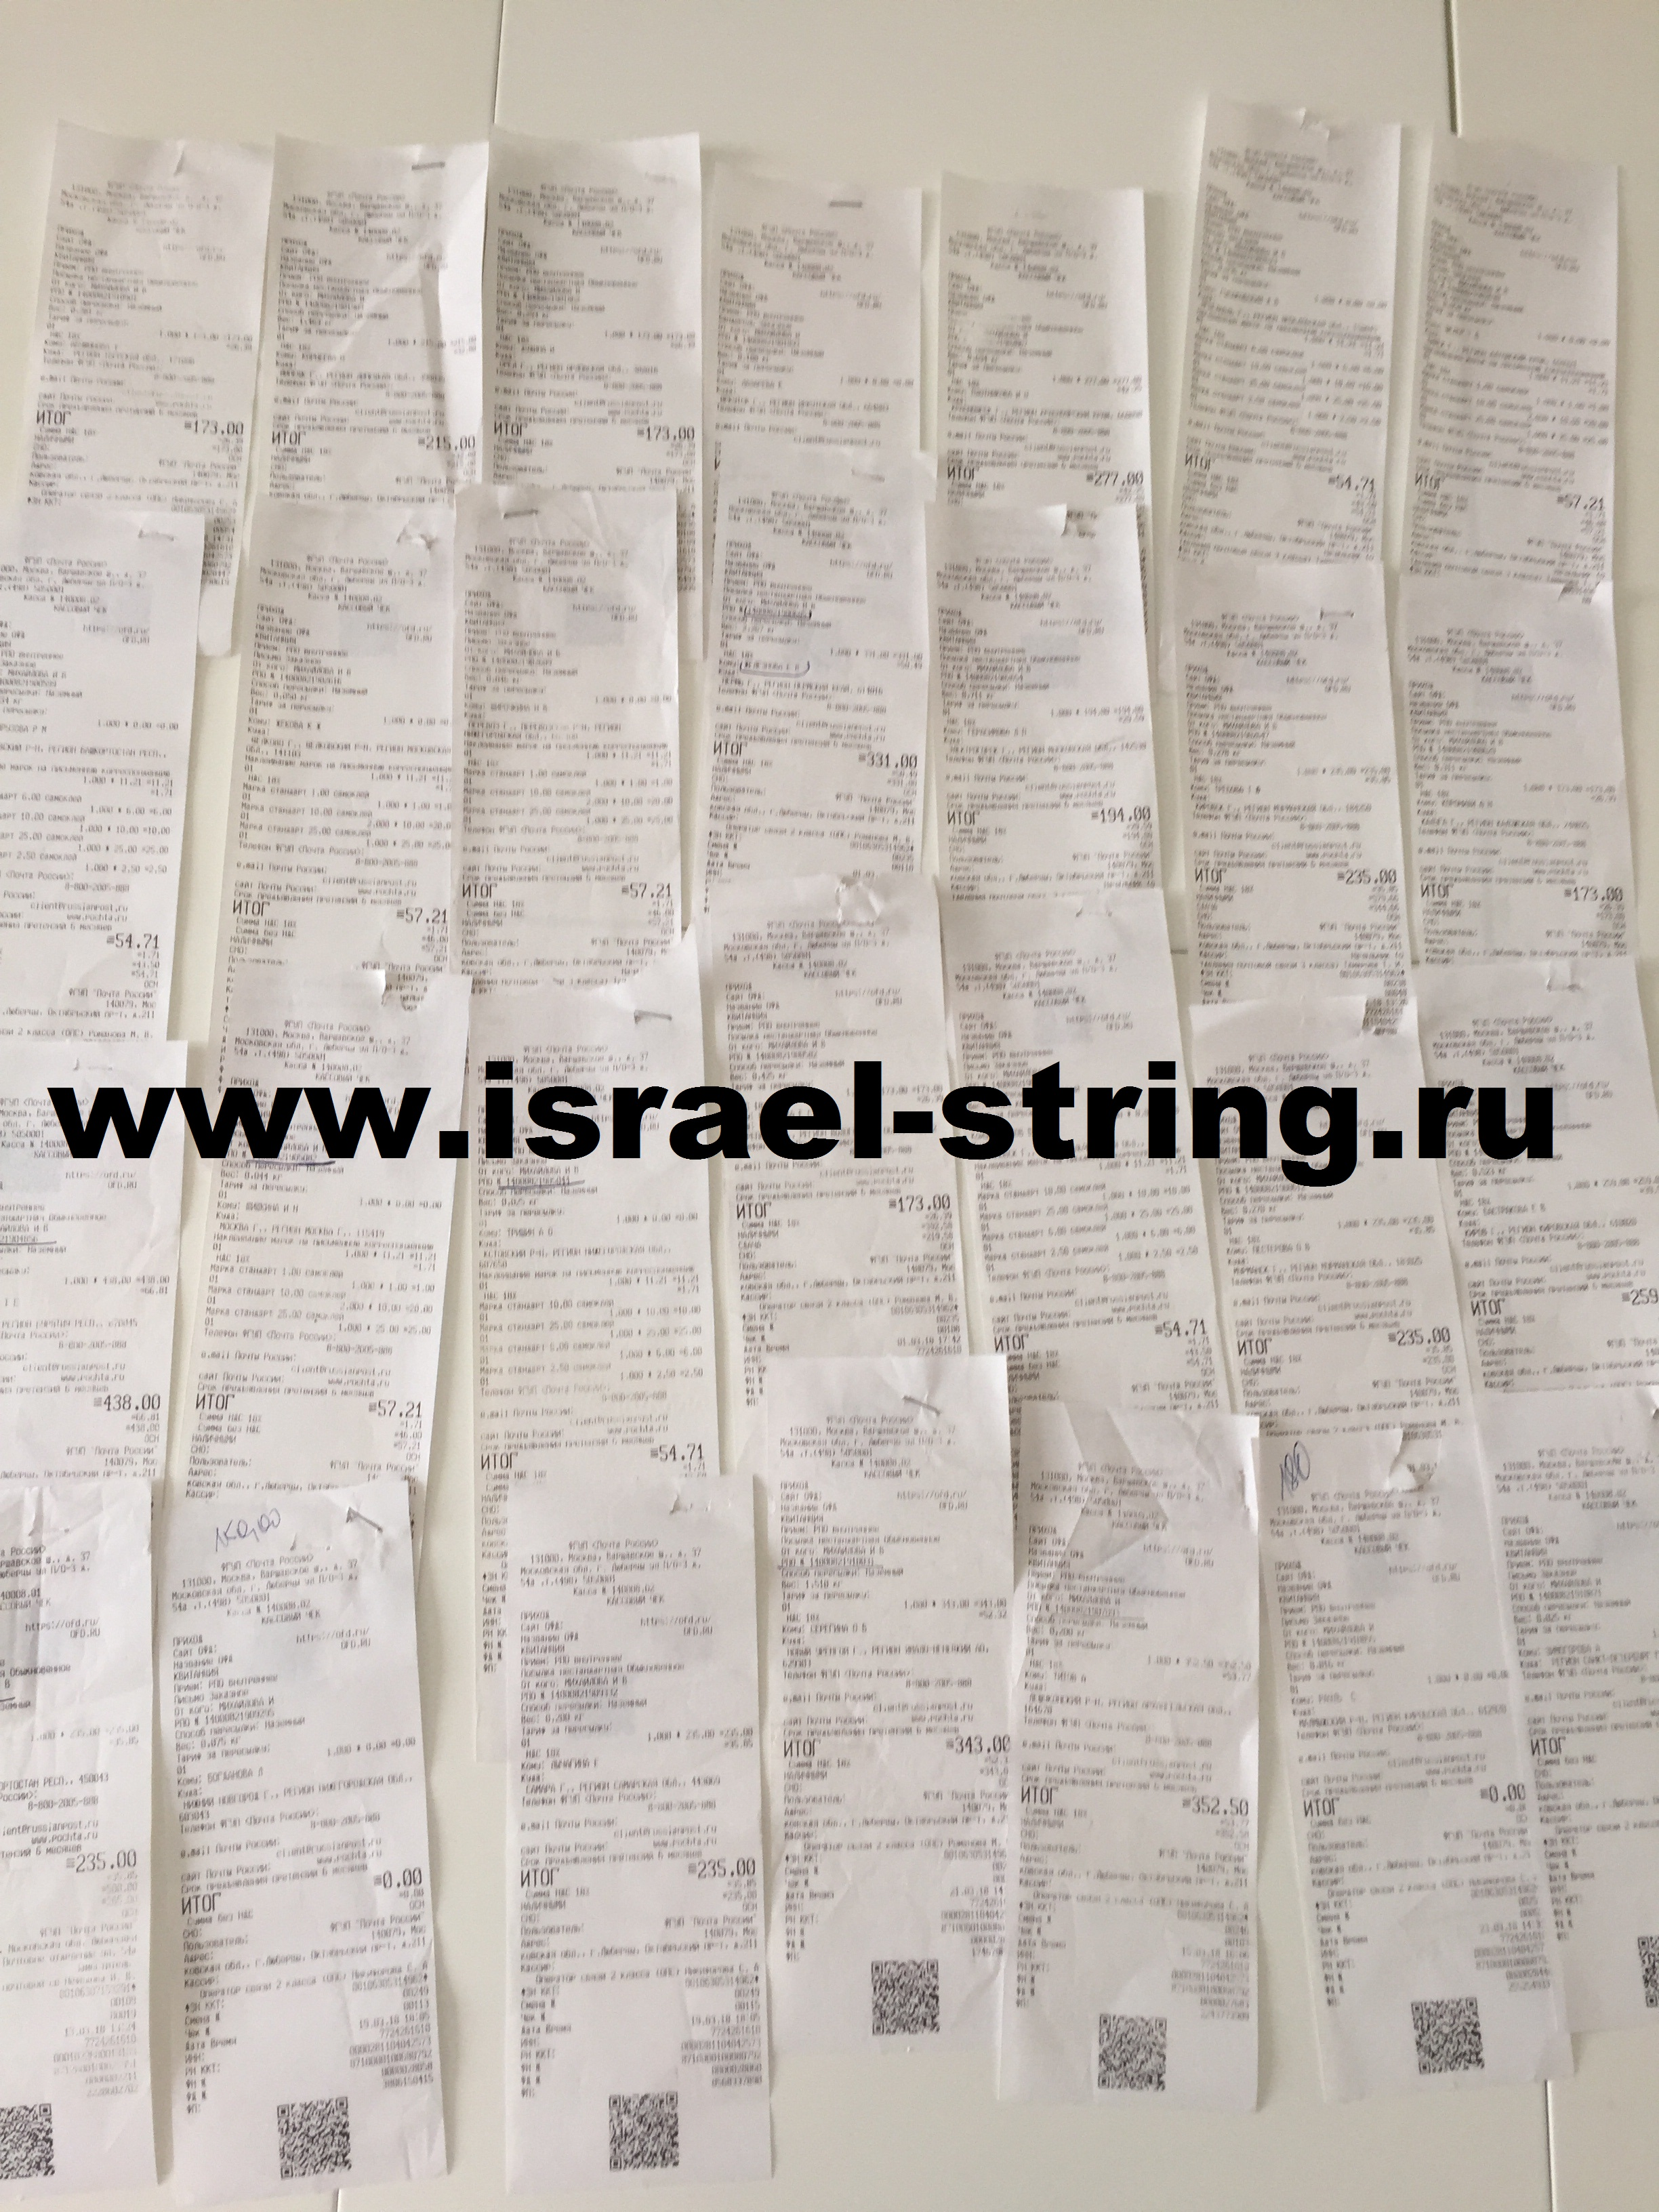 http://israel-string.ru/images/upload/IMG_45491.jpg